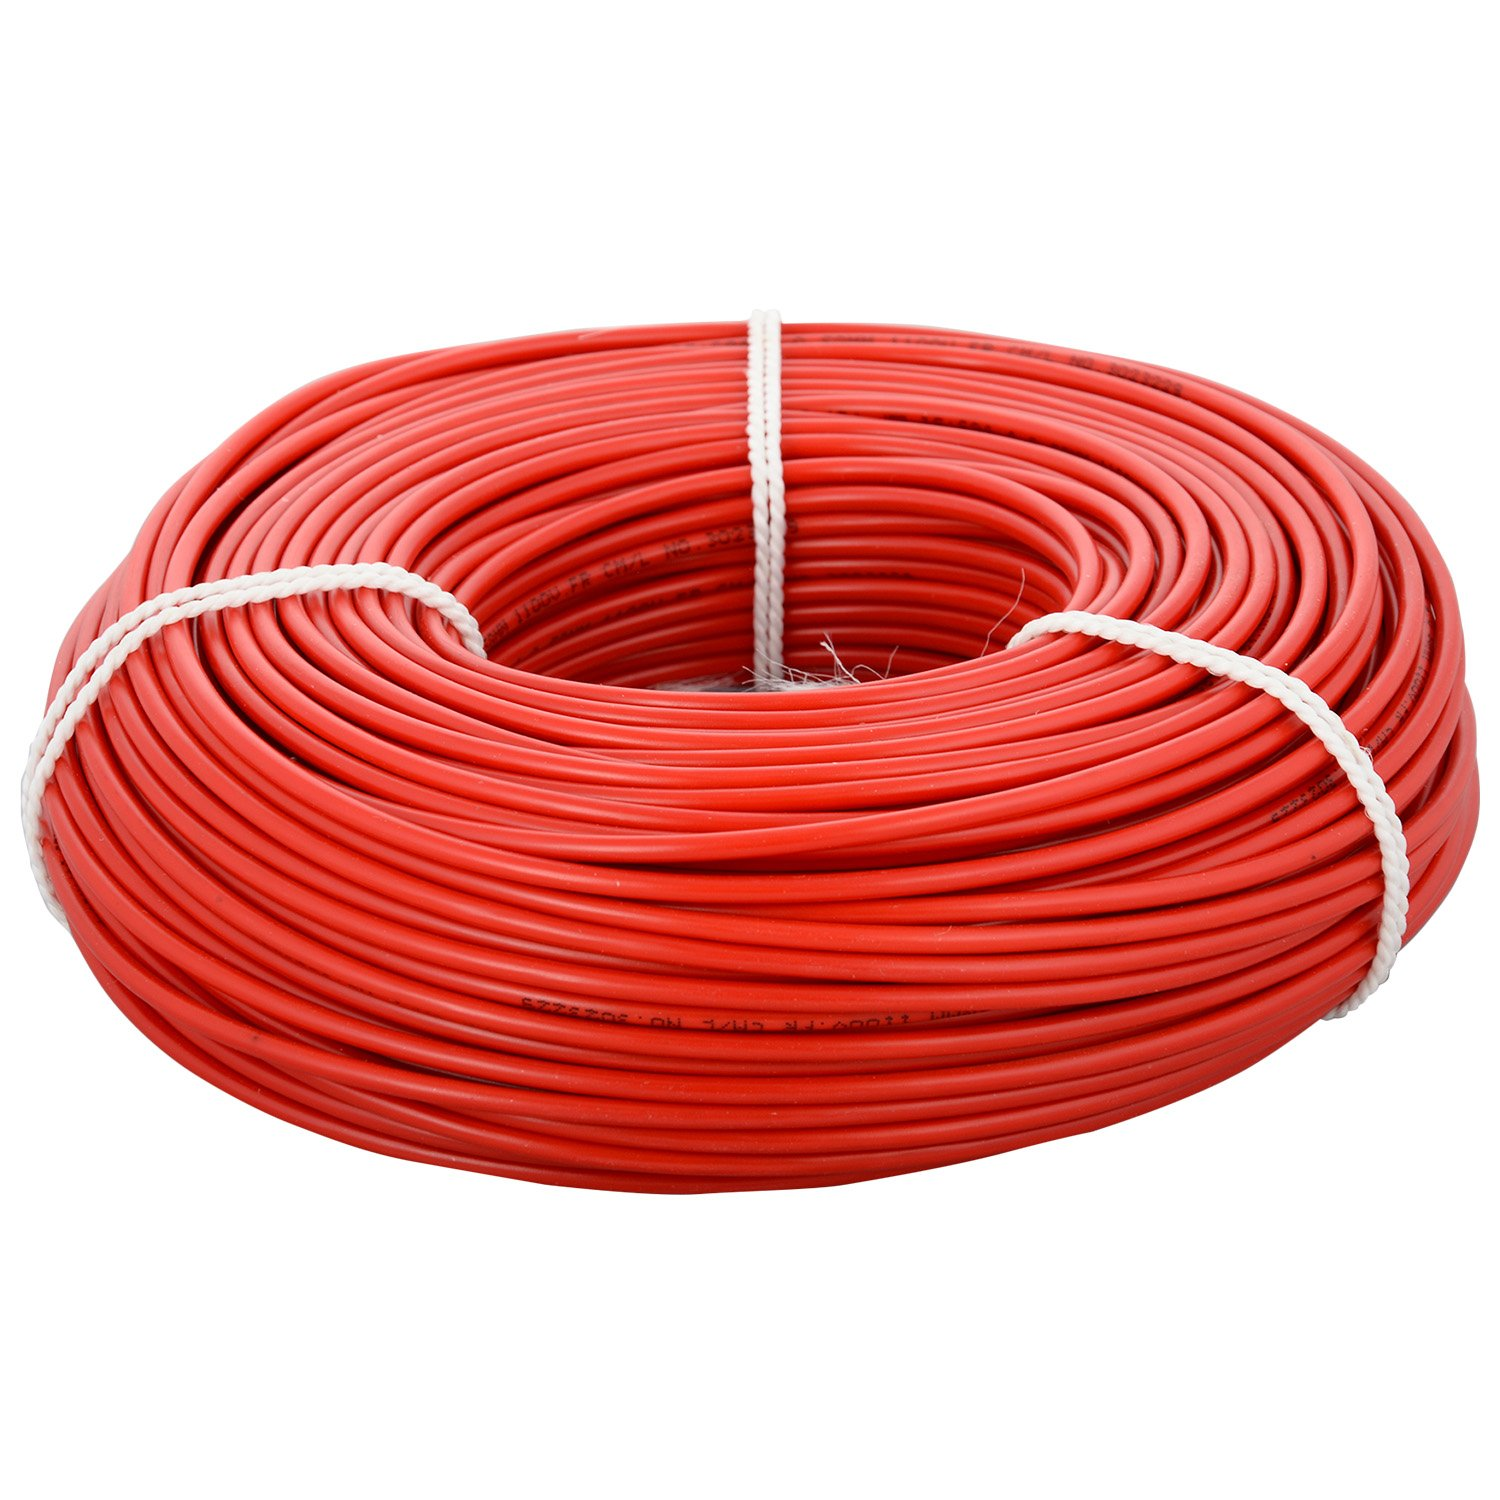 Cable buy electric cable 2 5 sq mm cable 1 5 sqmm wire product on - Arkaylite Flame Retardant Single Core Copper Cable 4 0 Sq Mm Wire Red Amazon In Home Improvement